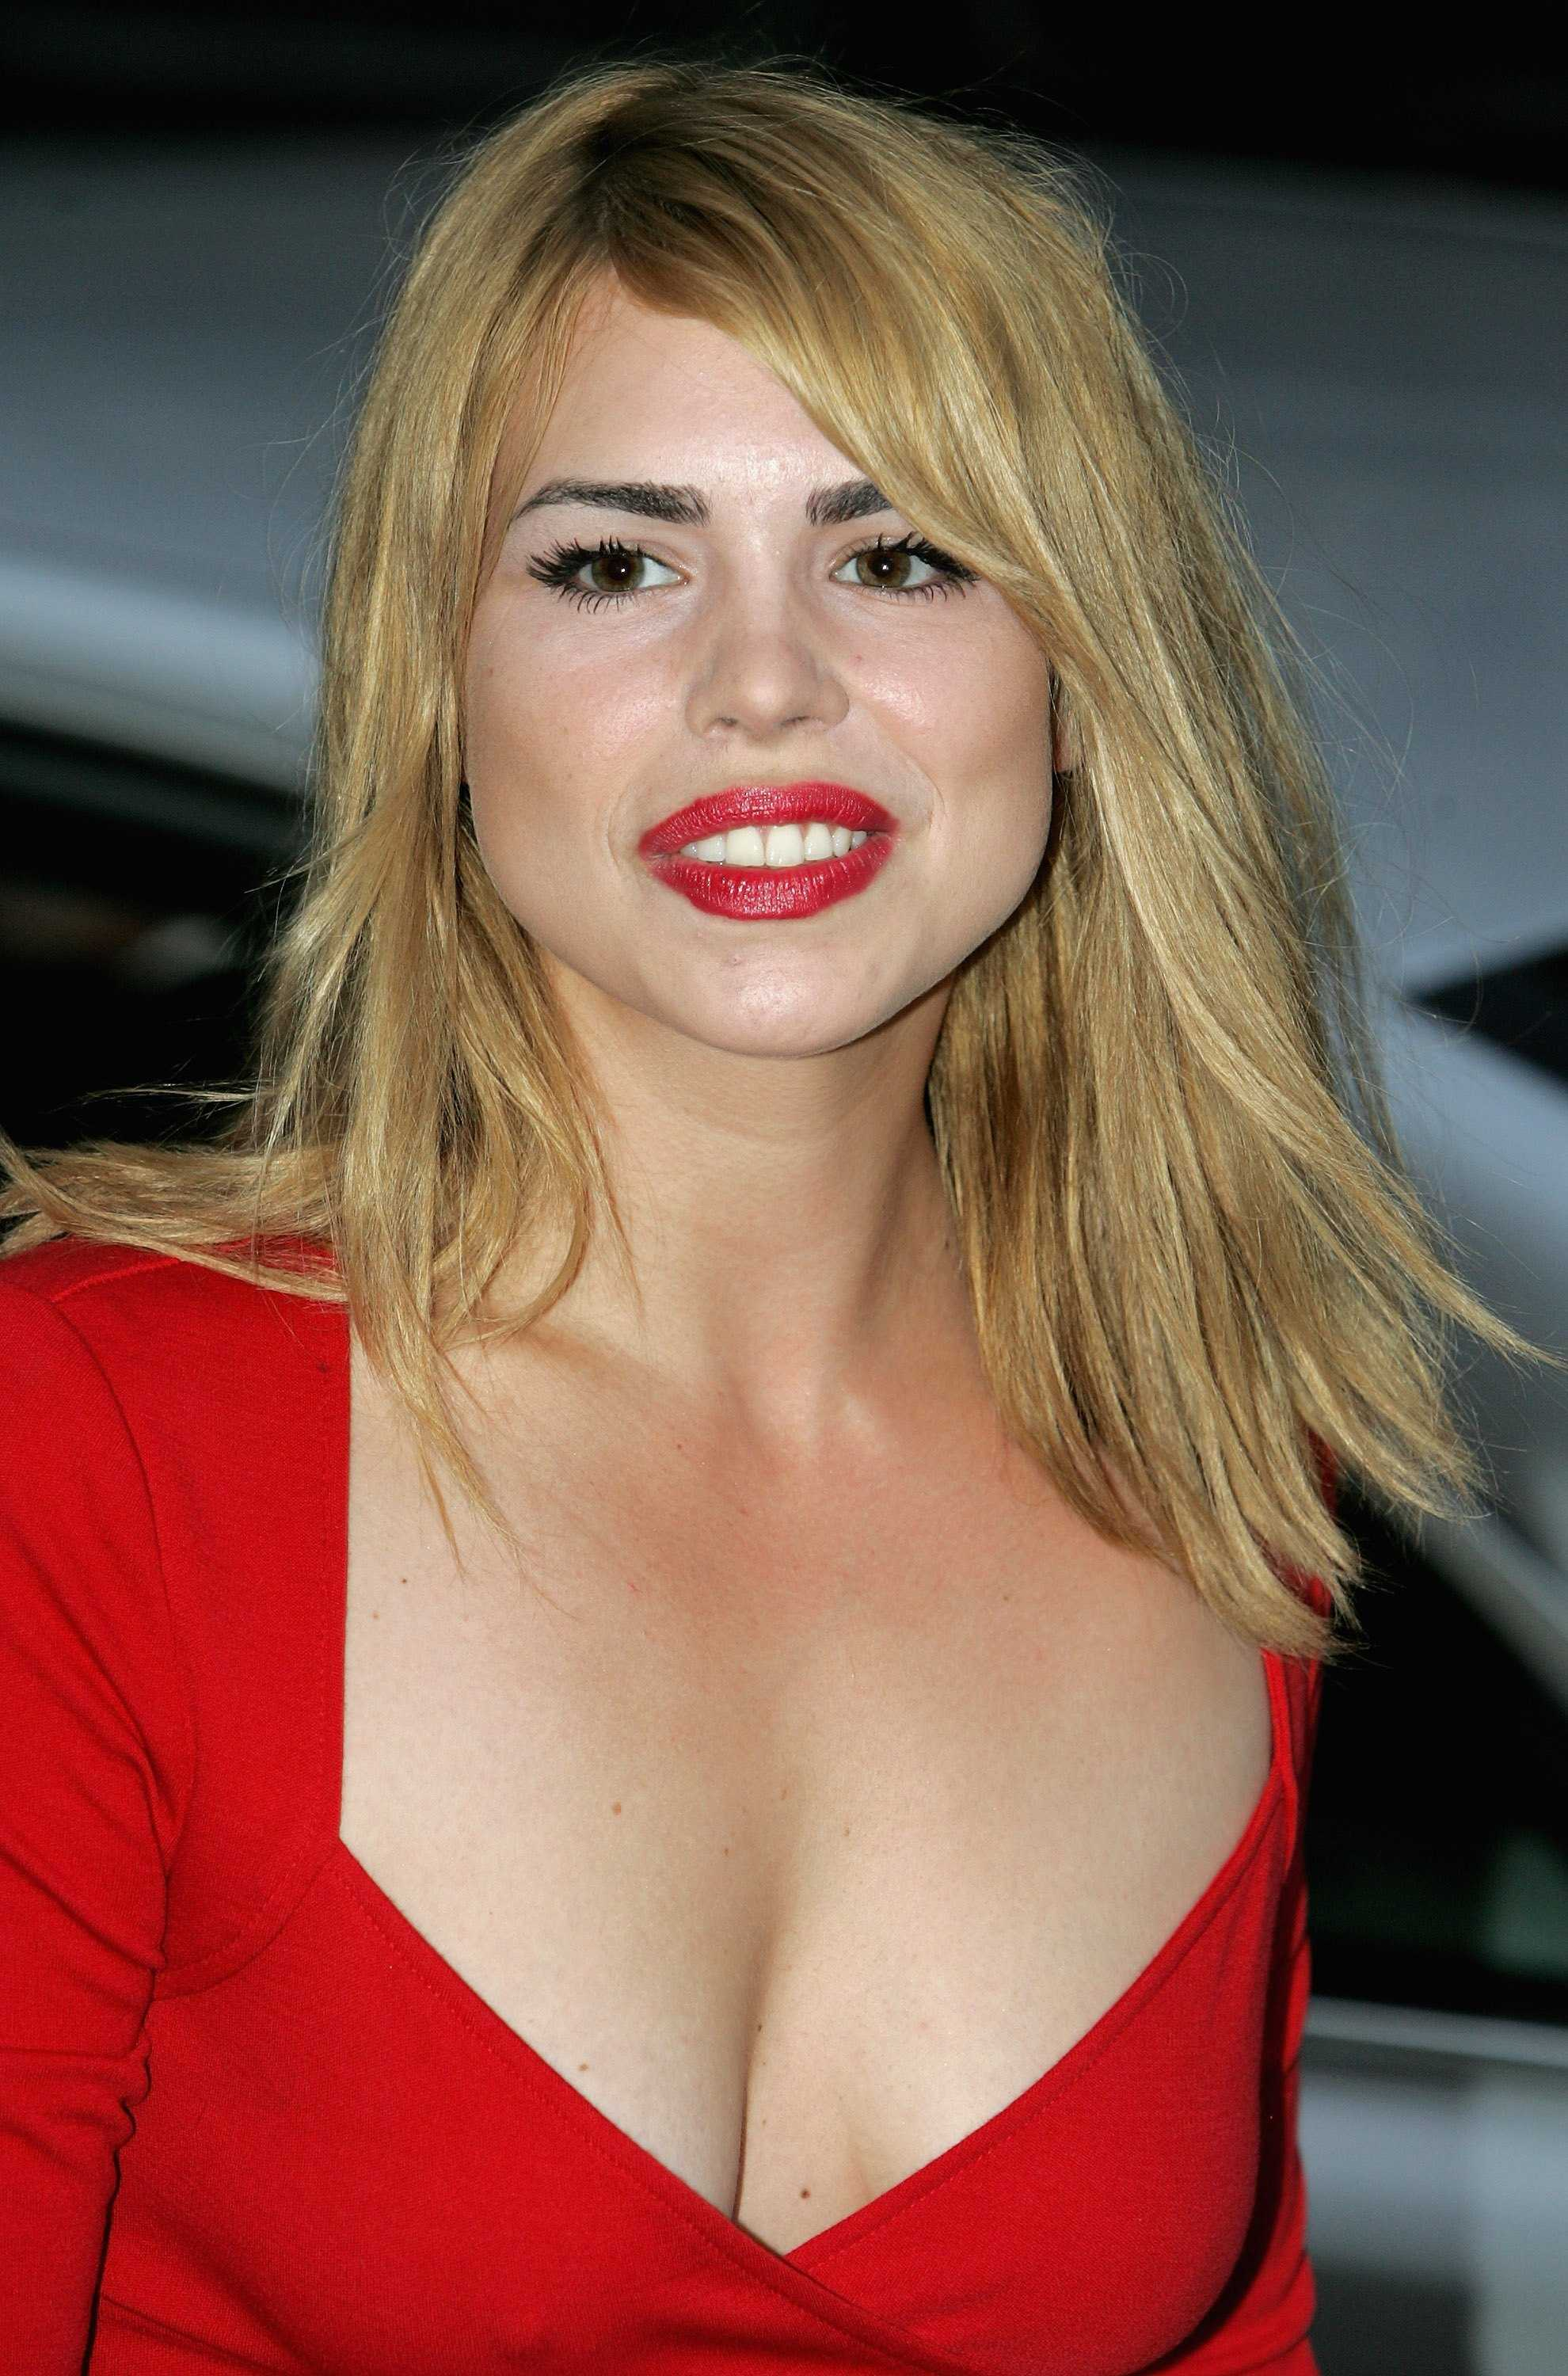 Pictures Billie Piper nude (63 photo), Ass, Leaked, Boobs, braless 2015